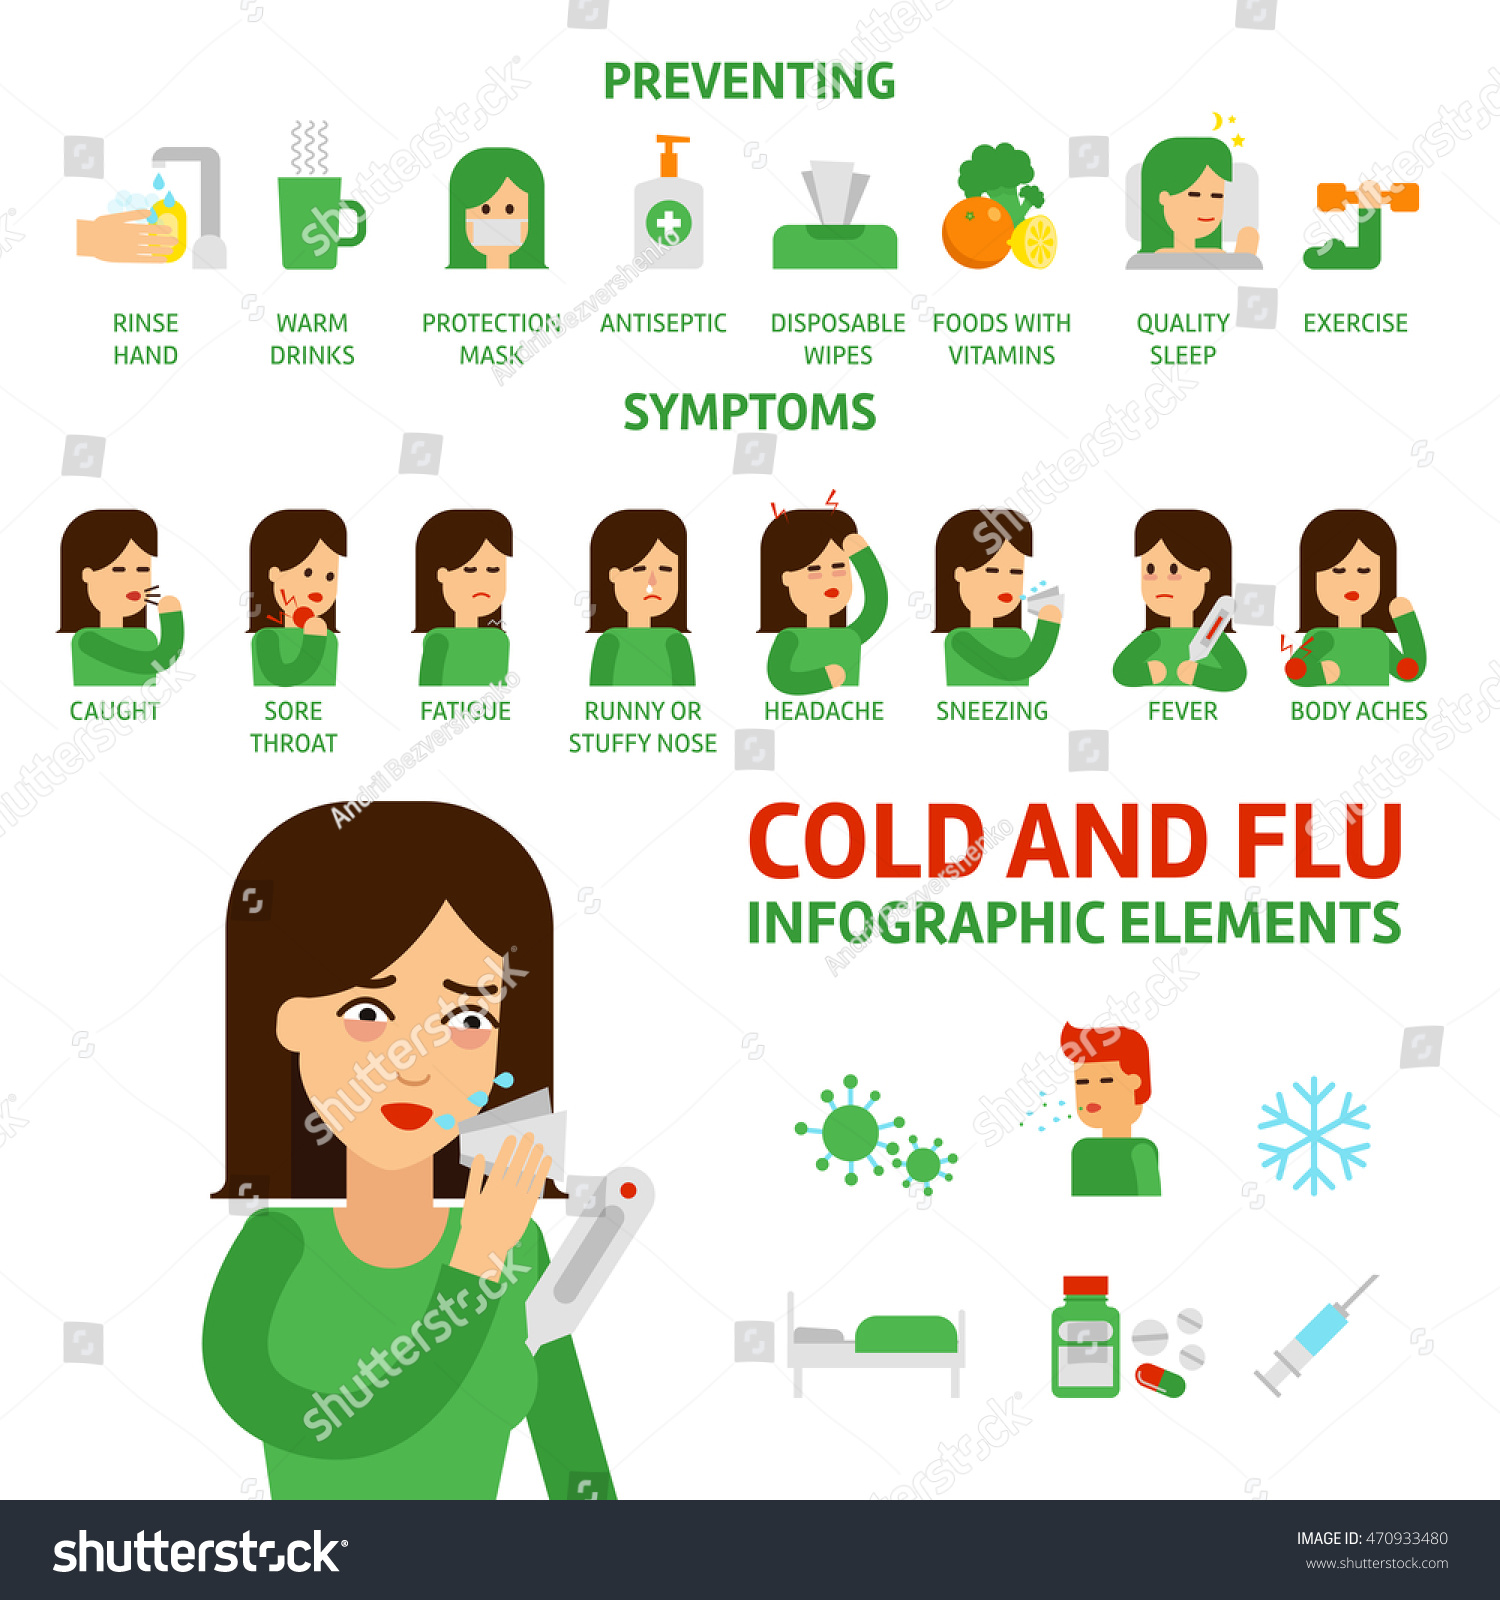 Flu Common Cold Infographic Elements Prevention Stock Vector Royalty Free 470933480